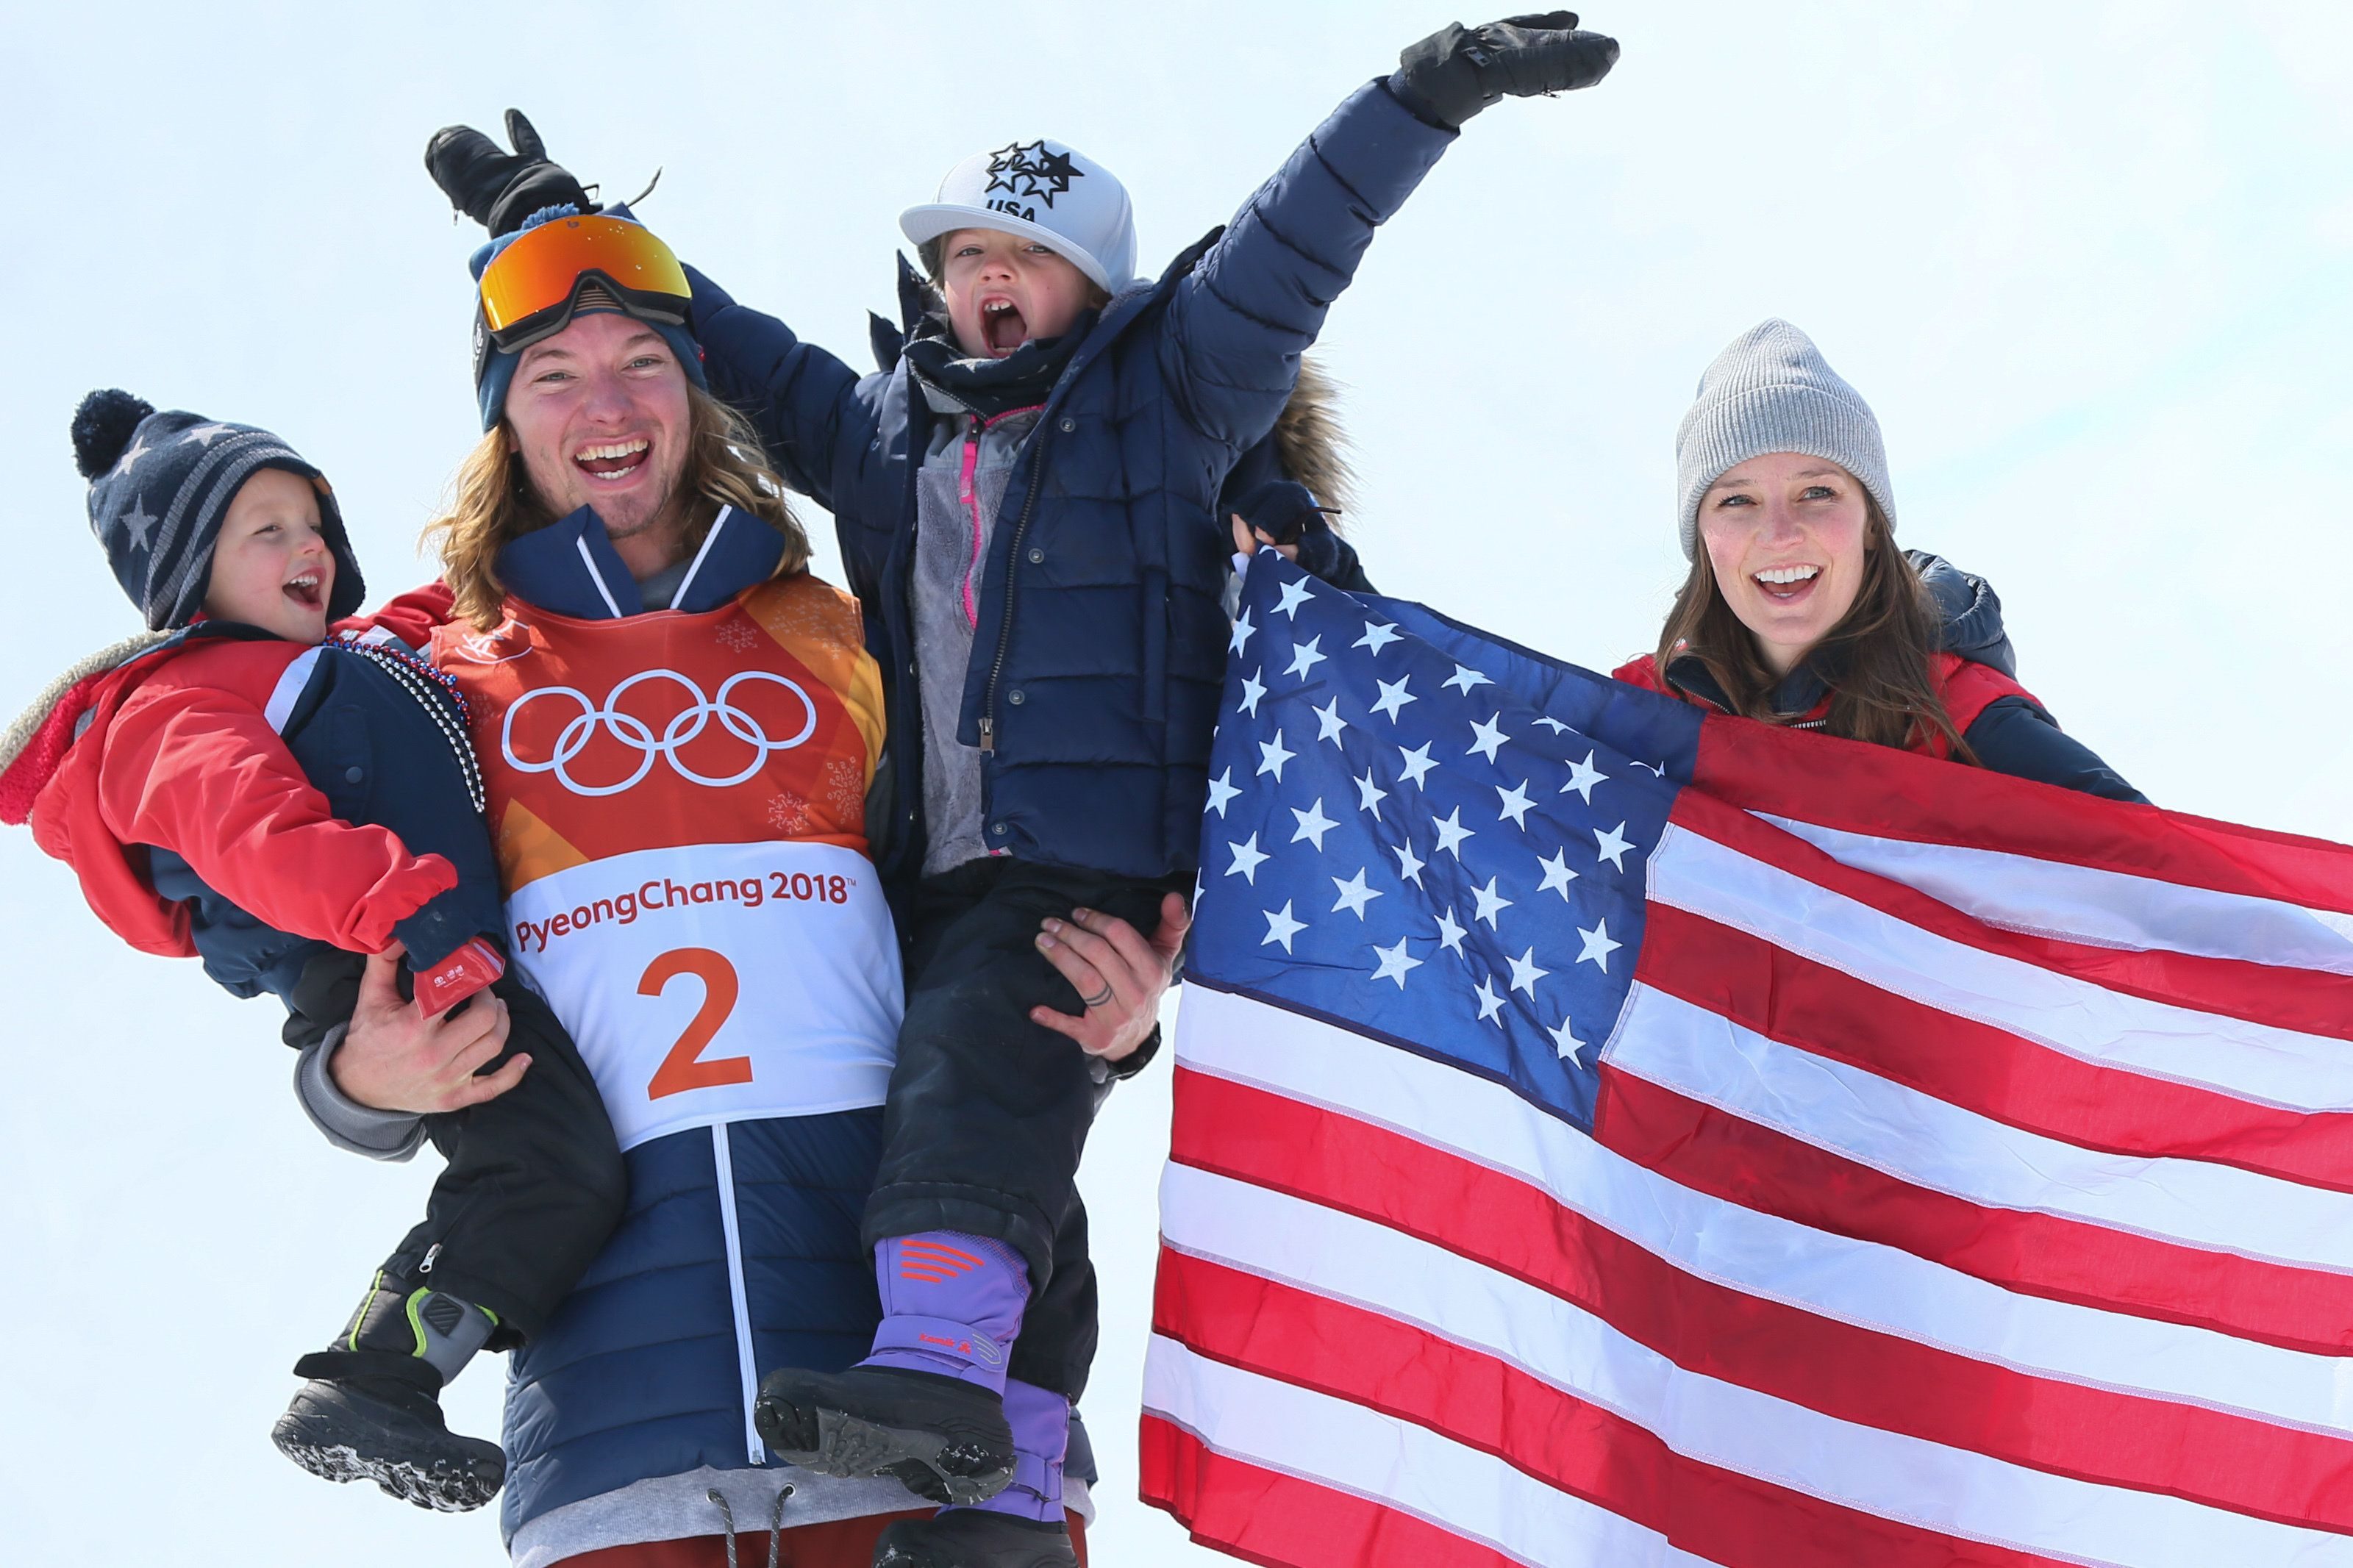 David Wise celebrates with his son Malachi, daughter Nayeli and wife Alexandra aftertaking first place during the frees